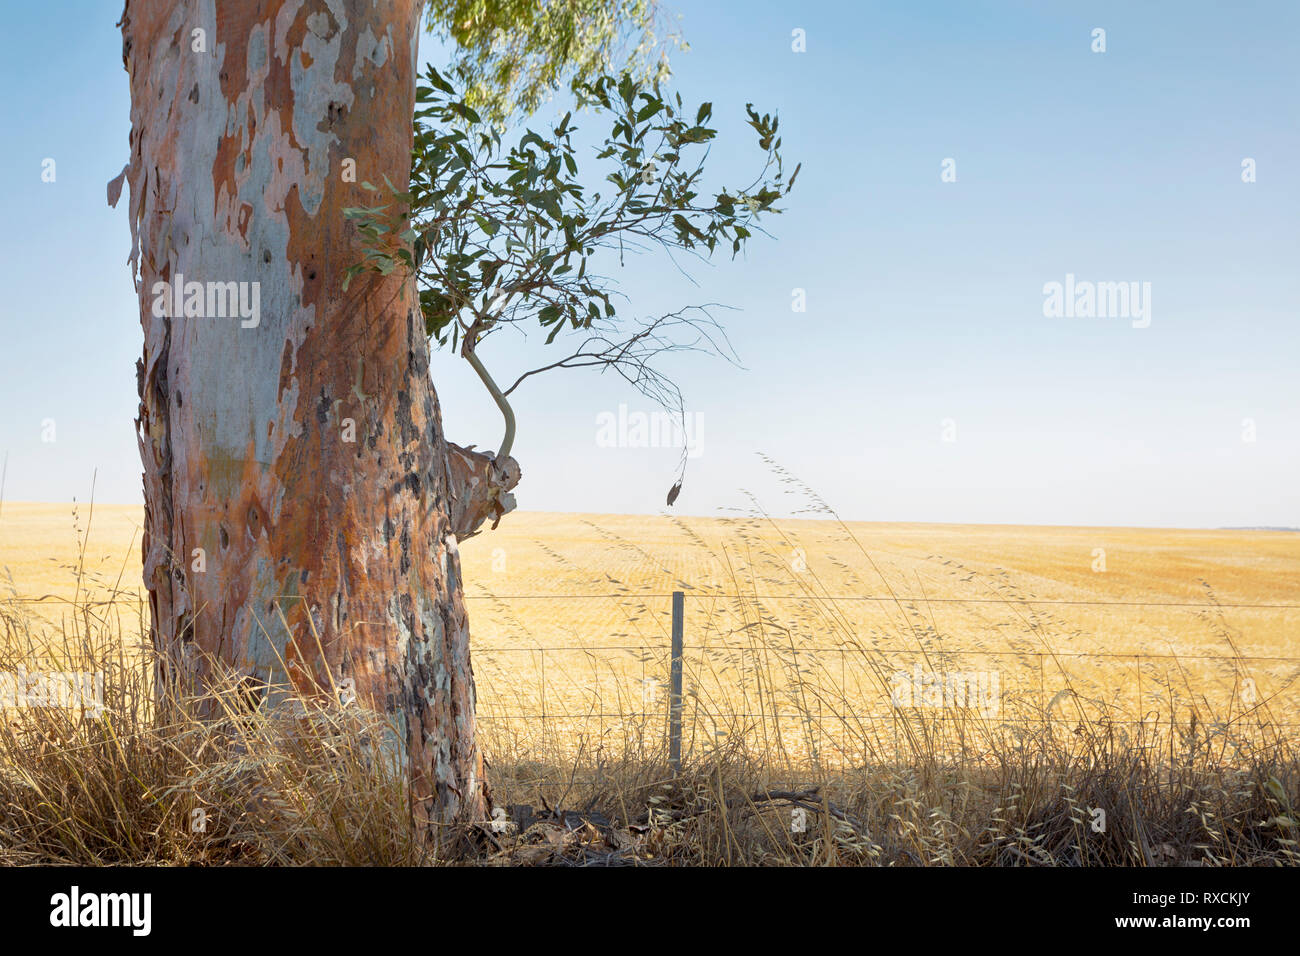 A Gum Tree with a field of Wheat in the background. - Stock Image